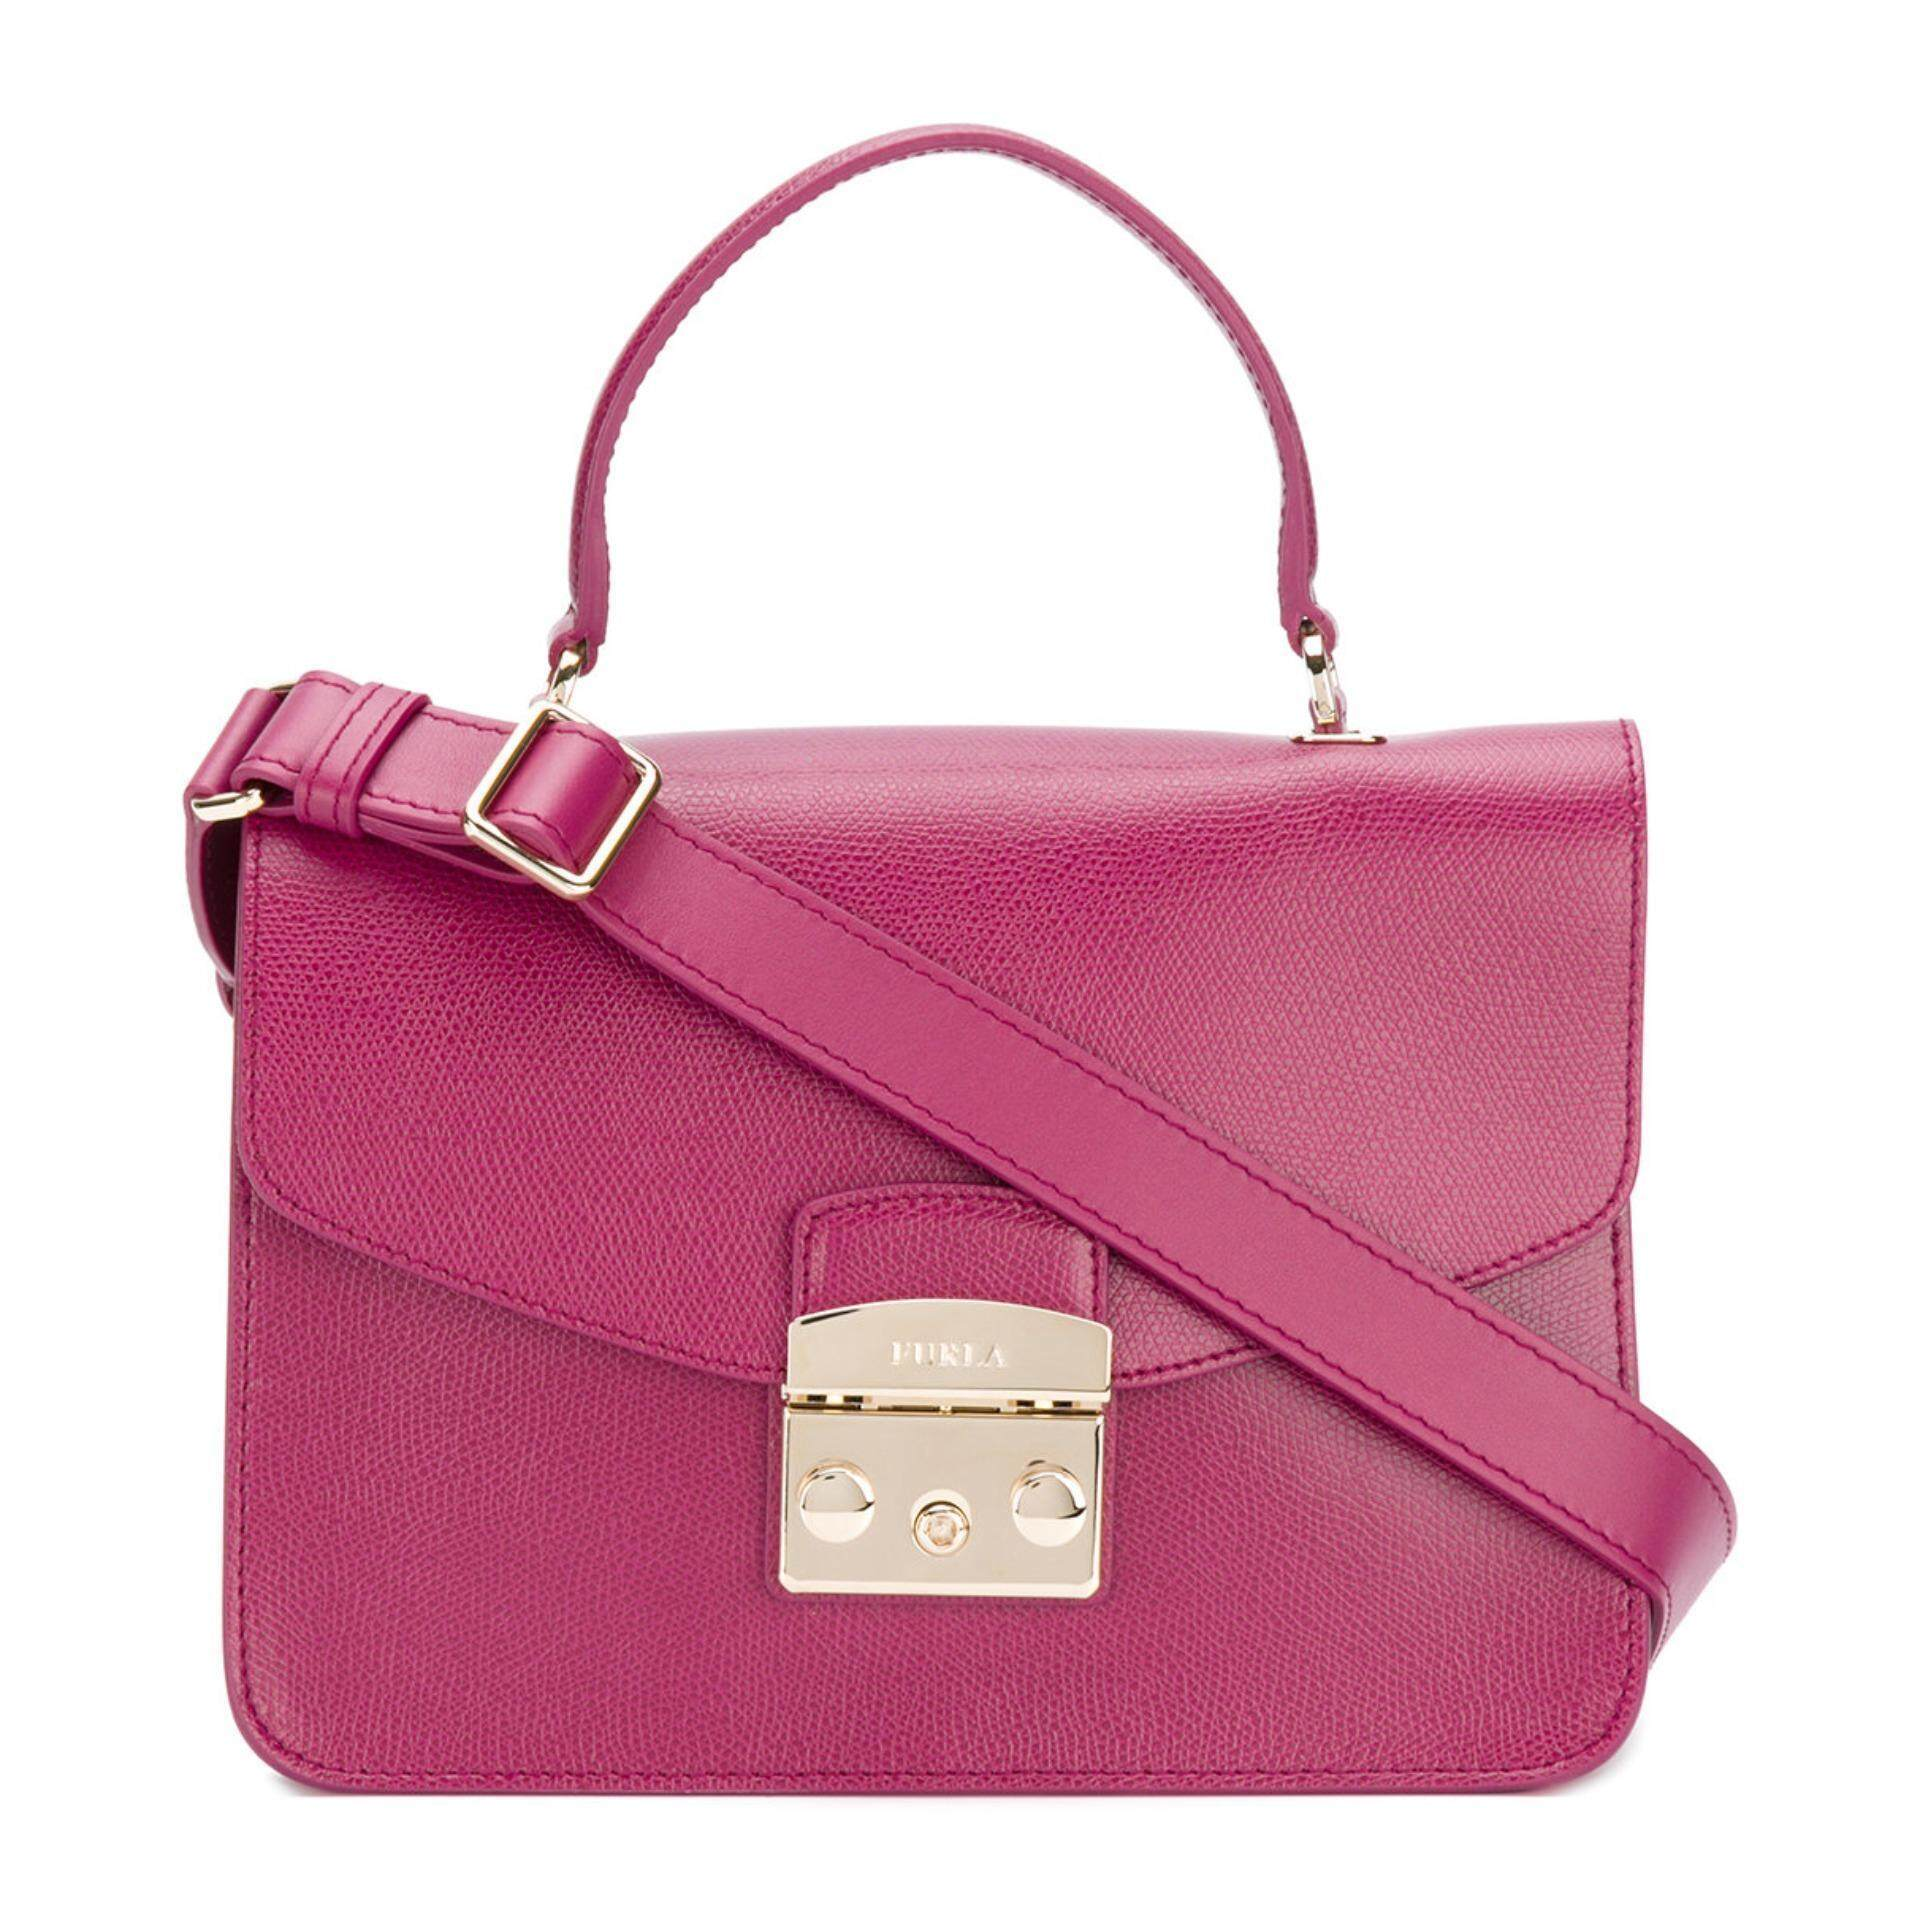 49f1254967 Popular Furla Handbags for the Best Prices in Malaysia